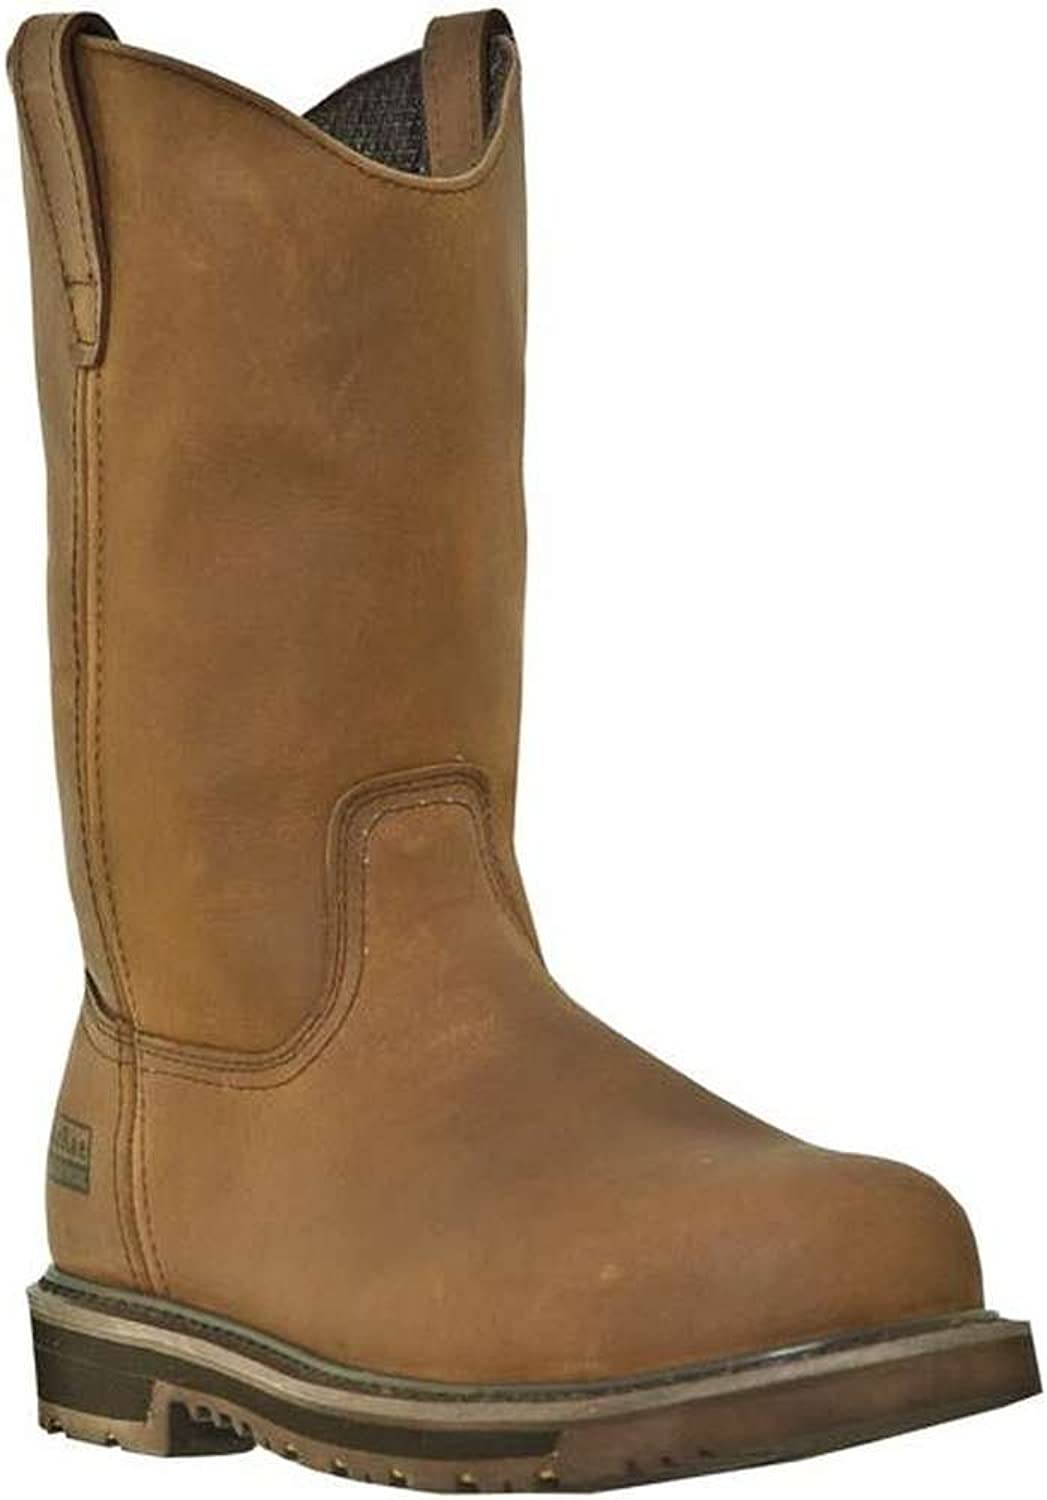 Men's McRae 11 inch Waterproof Pull - on Work Boots